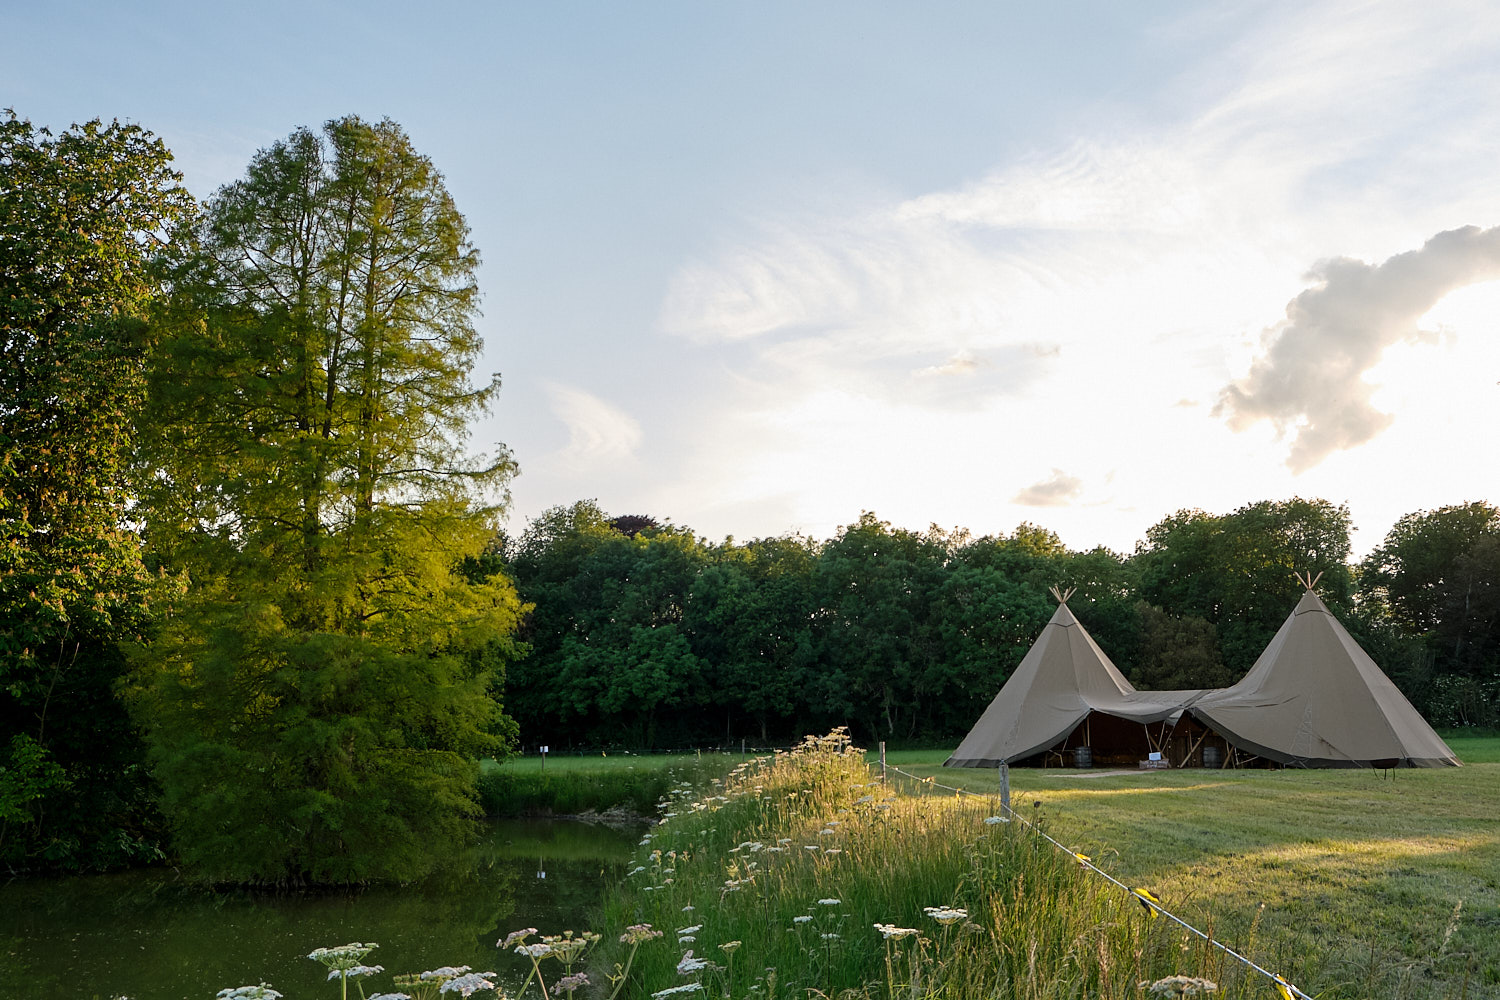 A tipi near a pond with a tree growing out of it.